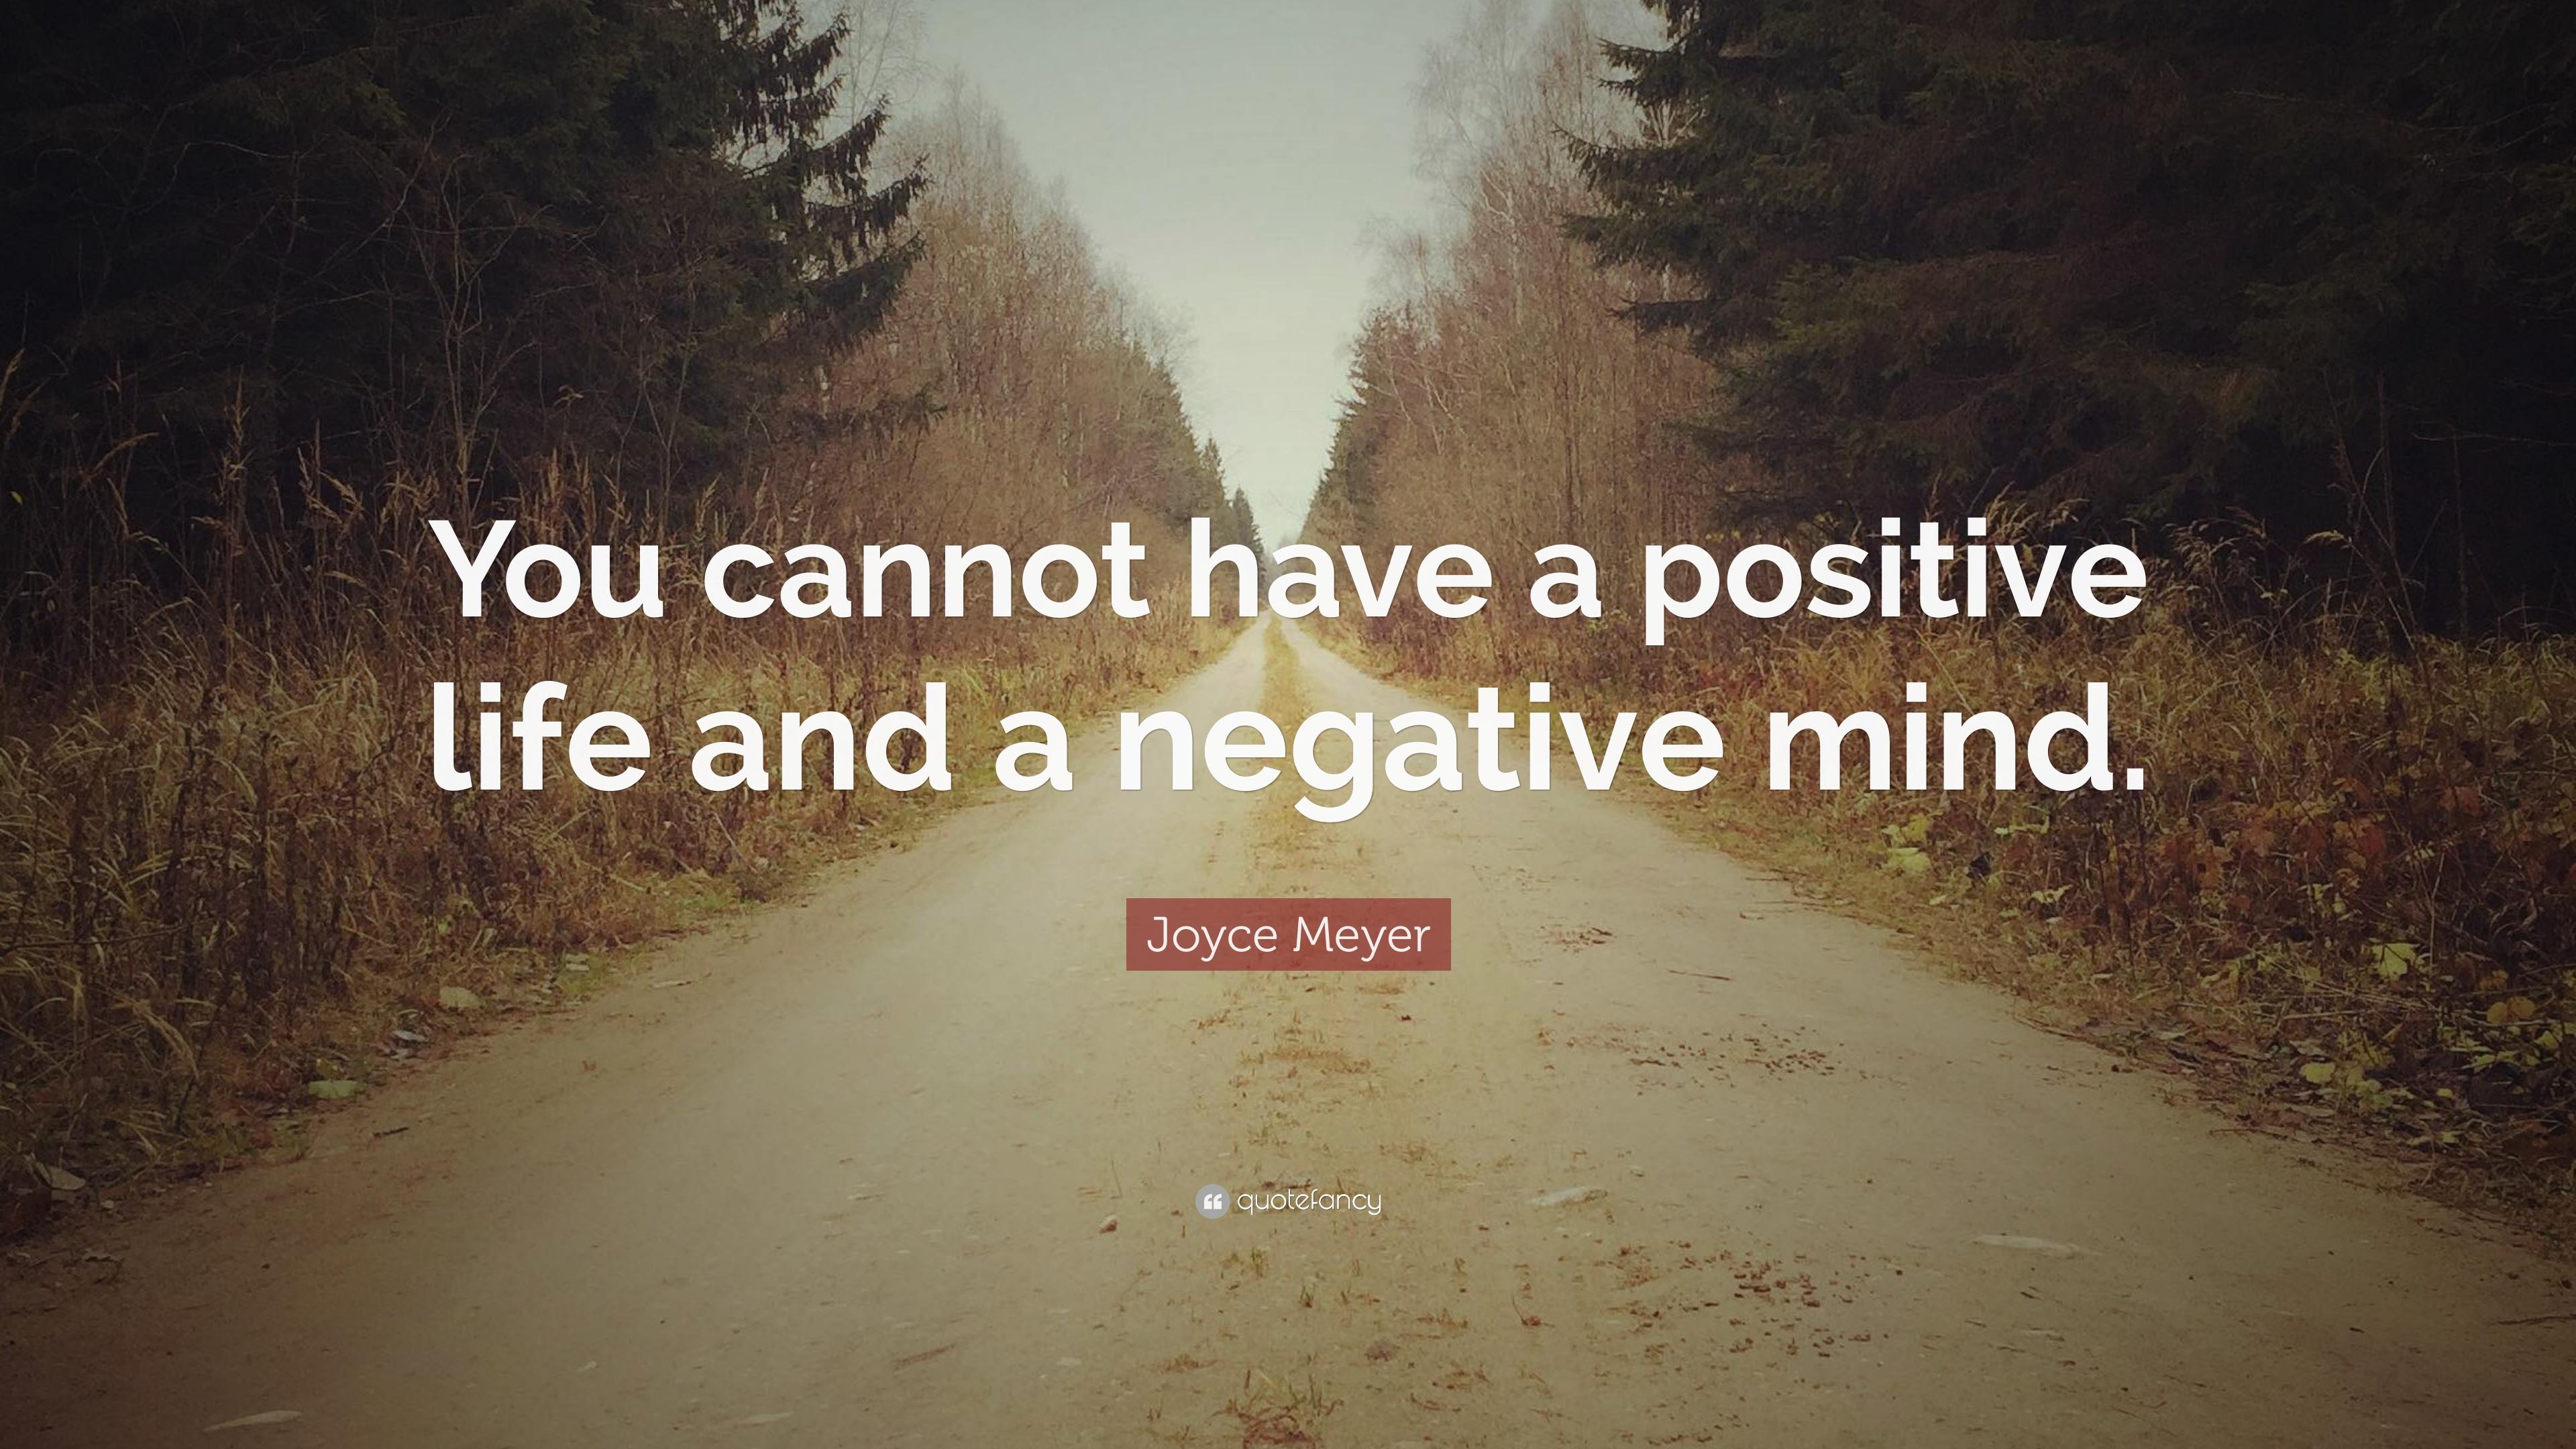 Joyce Meyer Quote: U201cYou Cannot Have A Positive Life And A Negative Mind.